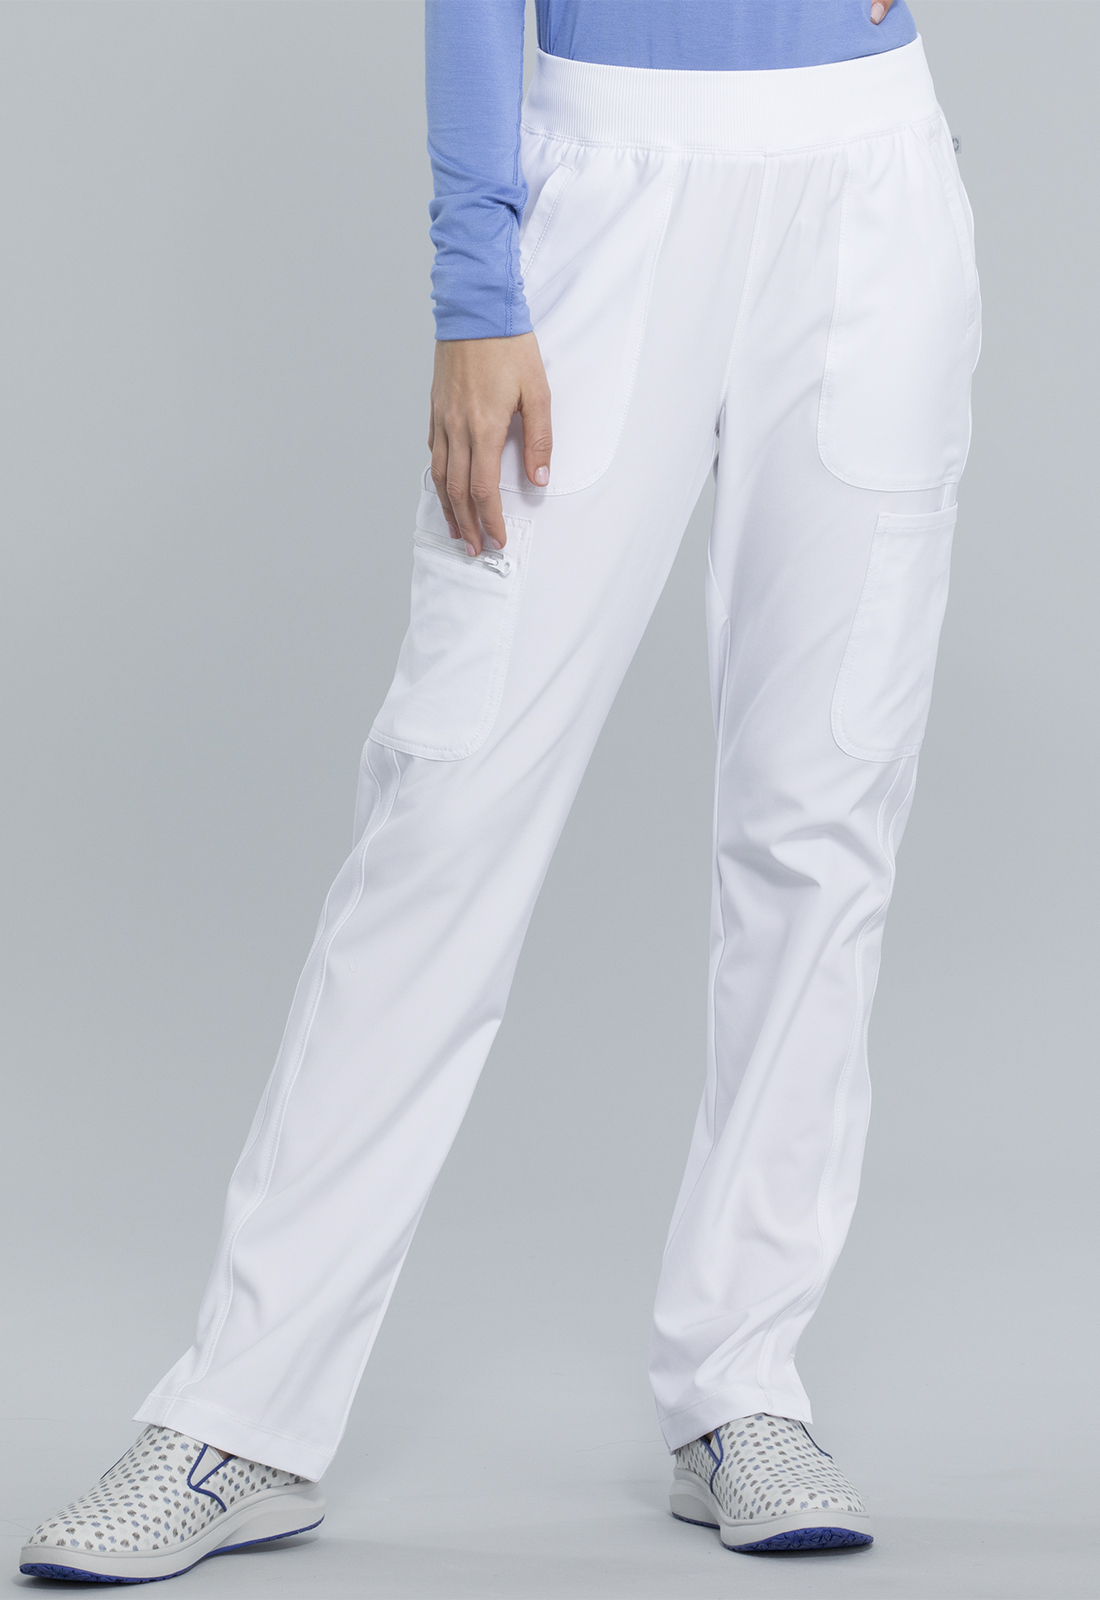 Mid Rise Tapered Leg Pull-on Pant